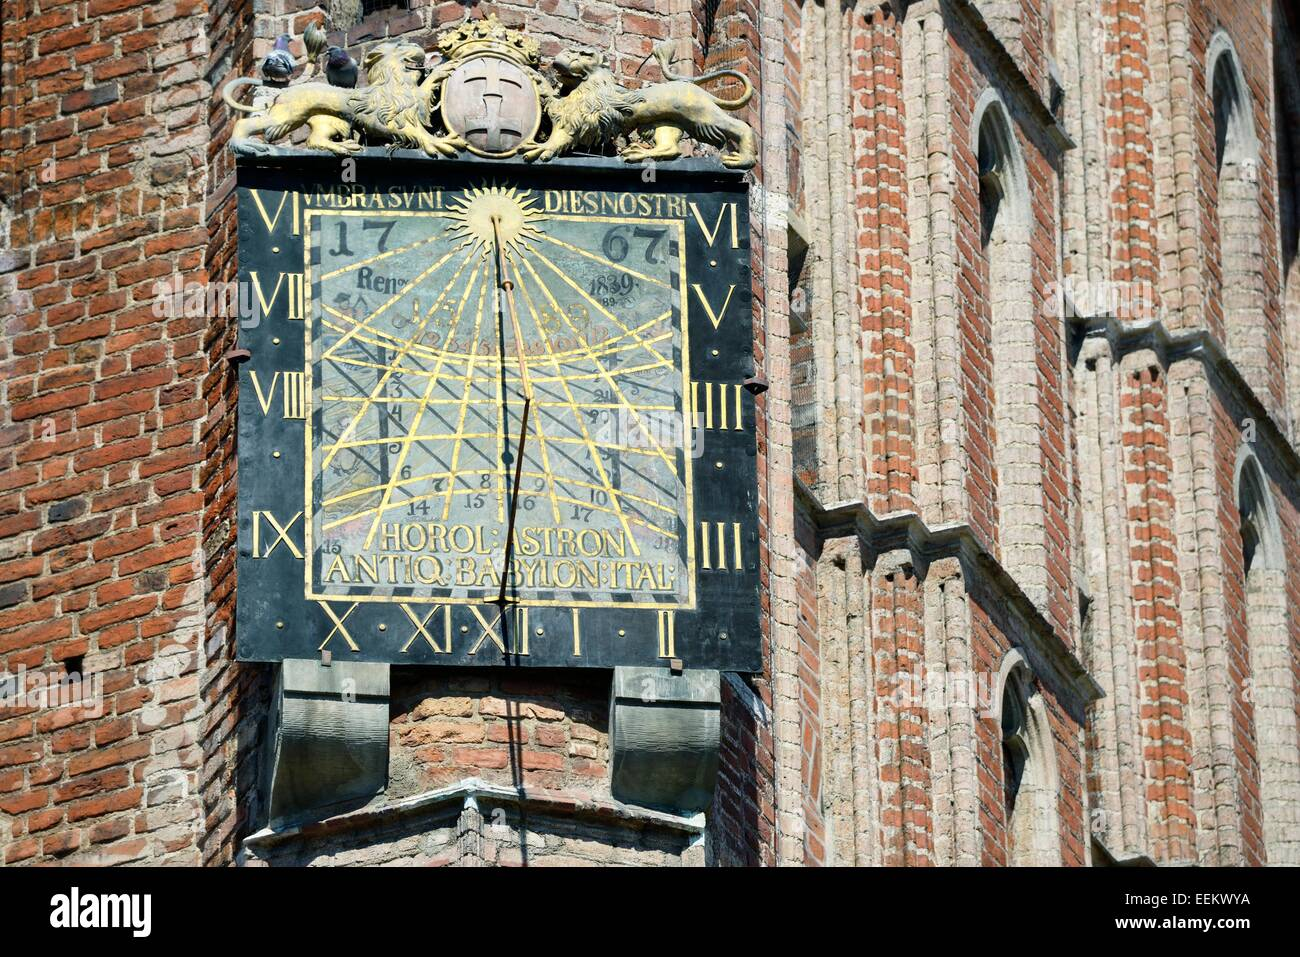 Gdansk Poland. Sun dial by Anton Glazier dating from 1589 on south wall of The Main Town Hall in the heart of the - Stock Image